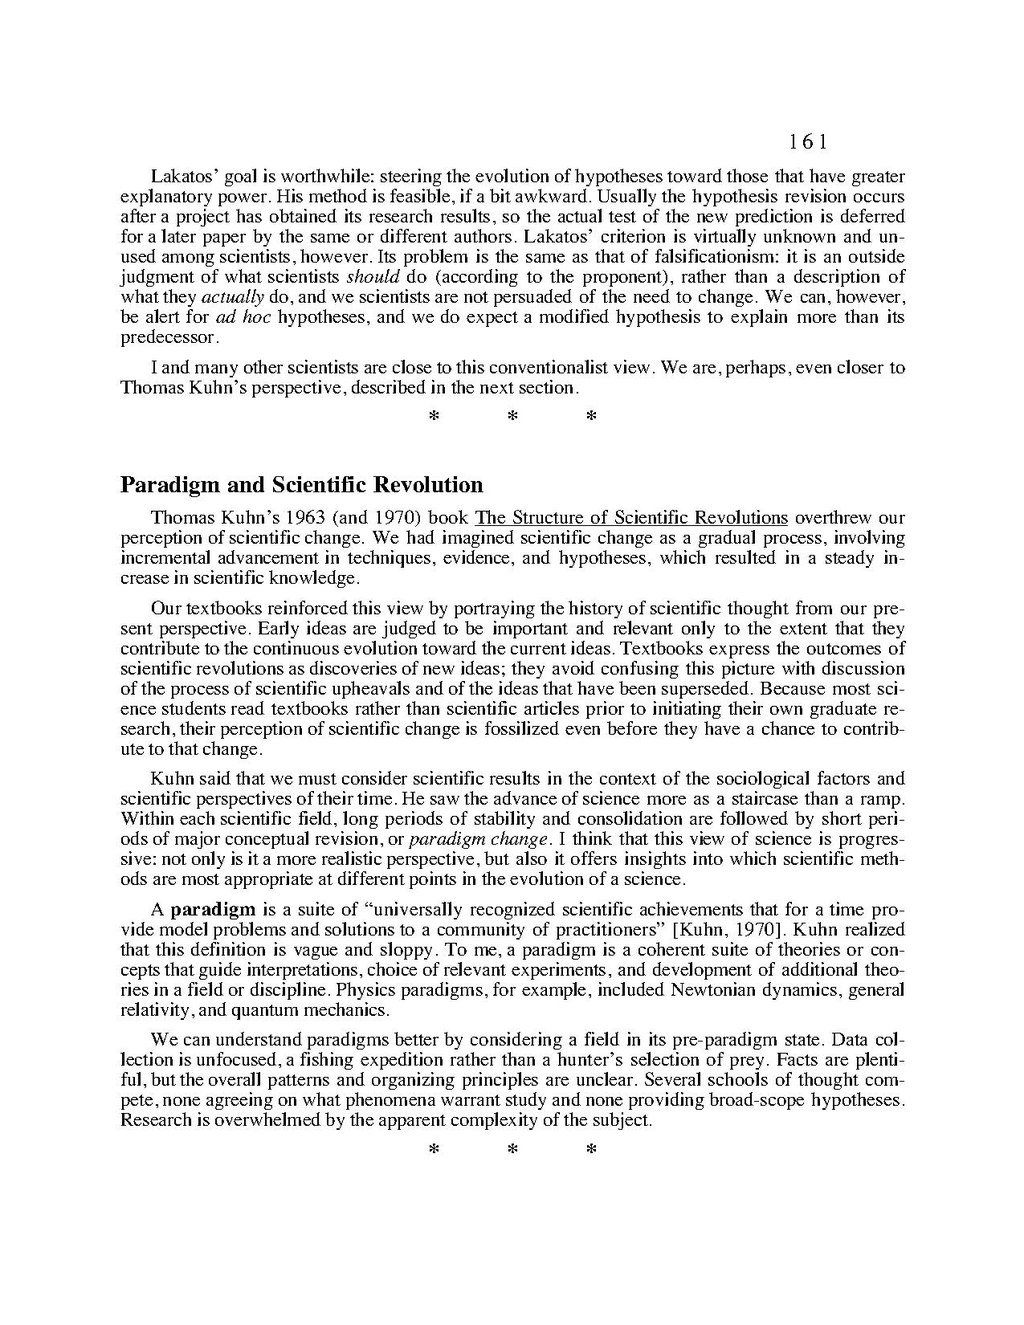 005 Research Paper Hypothesis In Pdf Page164 1024px Sm All Cc Sensational Testing Full